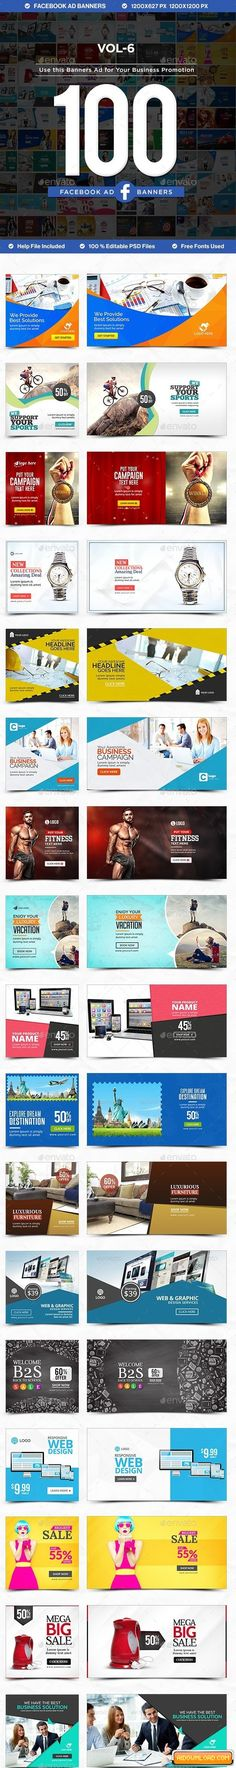 Facebook AD Banners Vol-6 – 50 Designs 18096587 Free Download | Free Graphic Templates, Fonts, Logos & Icons, PSD, AI